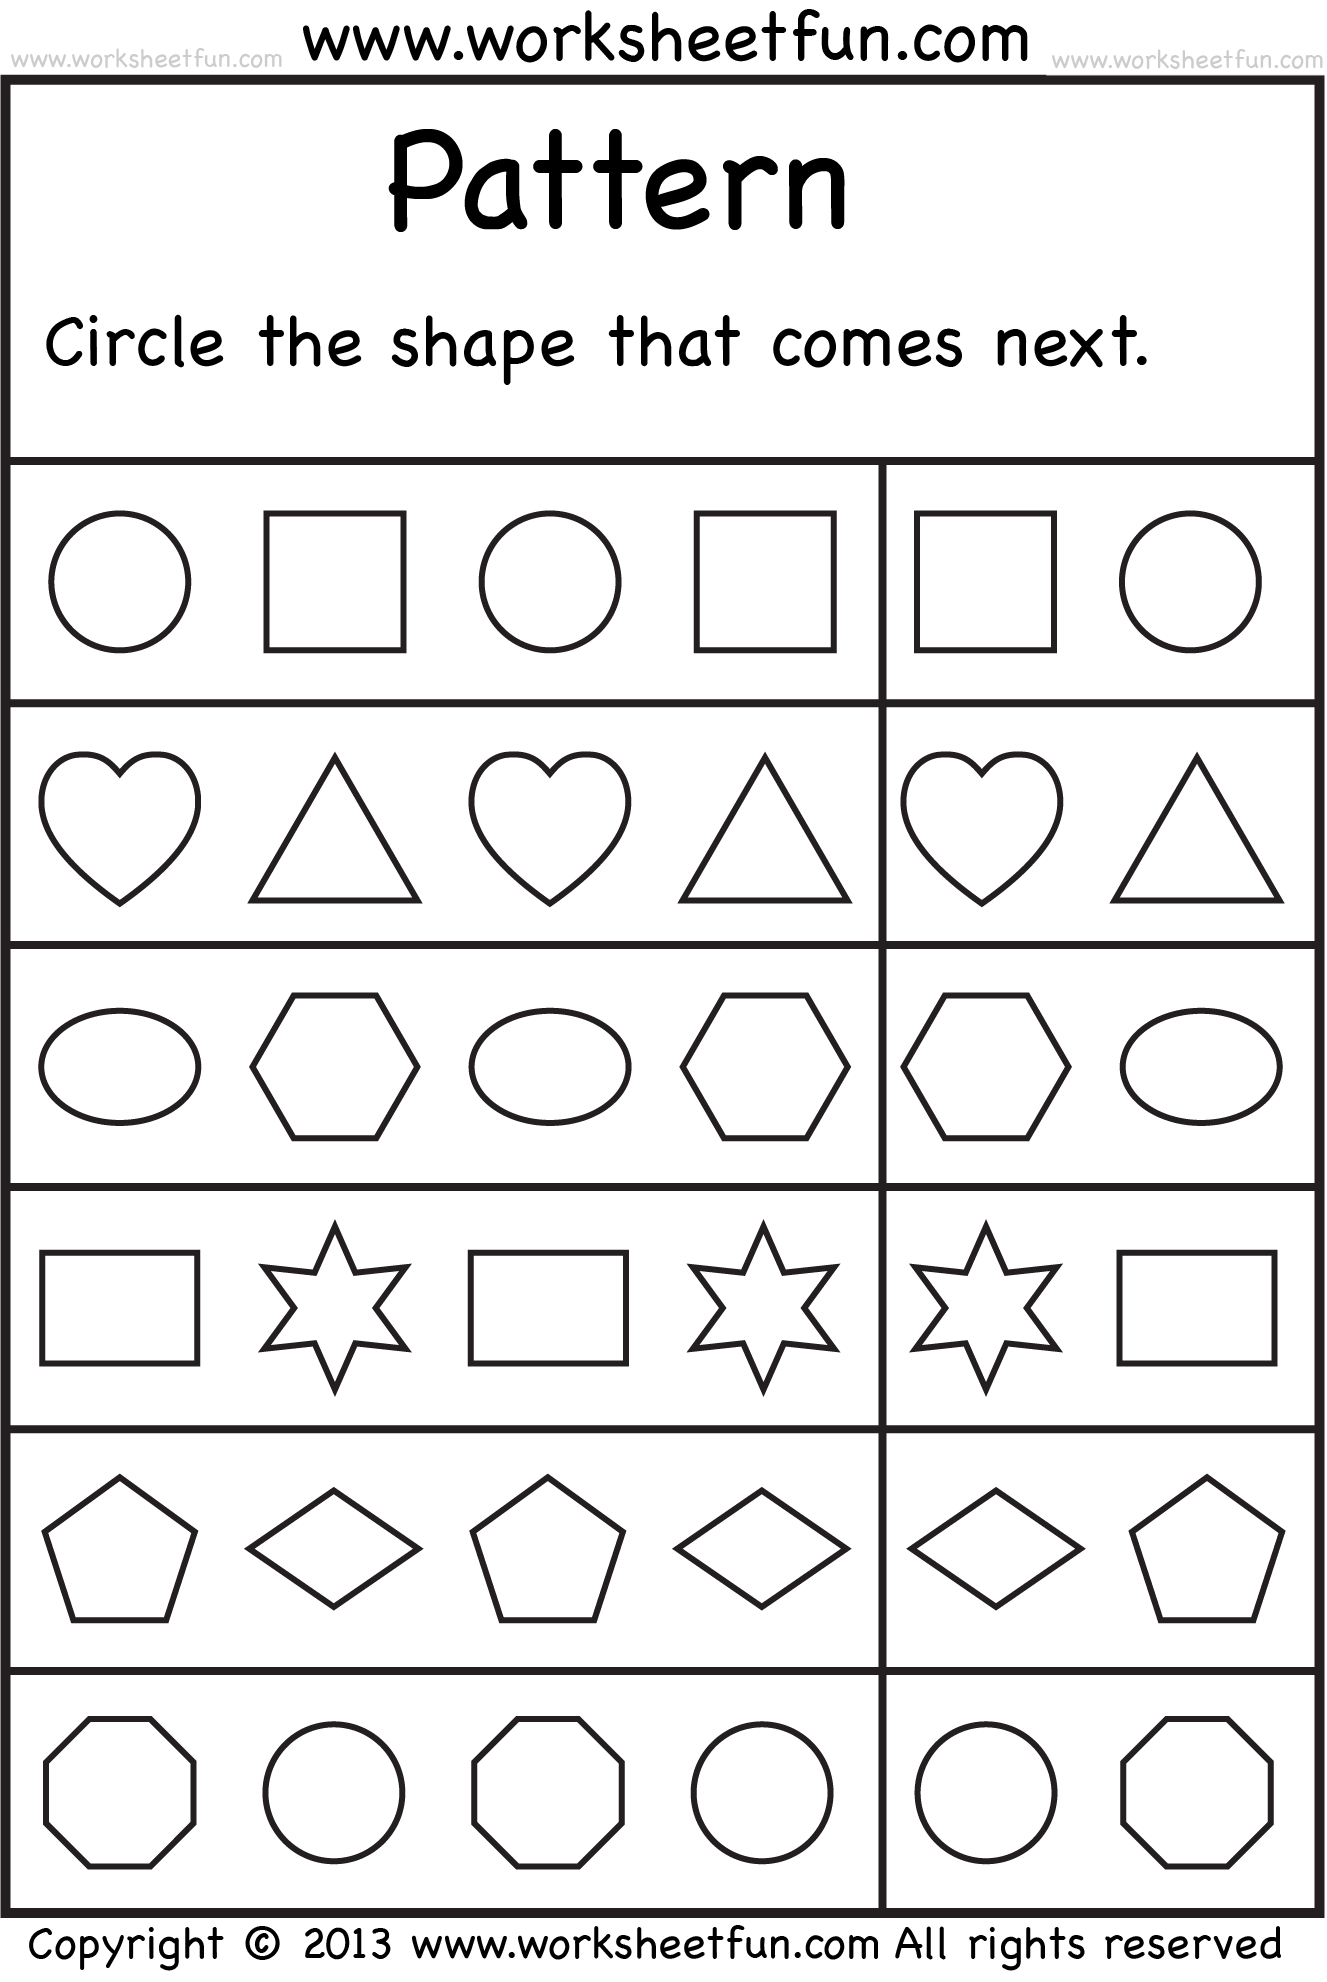 Weirdmailus  Pretty  Images About School Worksheets On Pinterest  Number Words  With Excellent  Images About School Worksheets On Pinterest  Number Words Alphabet Worksheets And Free Printable Kindergarten Worksheets With Attractive Balancing Chemical Equation Worksheet Also Free Th Grade Math Worksheets In Addition Cvc Word Worksheets And Esl Vocabulary Worksheets As Well As Complete Subject And Predicate Worksheets Additionally Rd Grade Printable Worksheets From Pinterestcom With Weirdmailus  Excellent  Images About School Worksheets On Pinterest  Number Words  With Attractive  Images About School Worksheets On Pinterest  Number Words Alphabet Worksheets And Free Printable Kindergarten Worksheets And Pretty Balancing Chemical Equation Worksheet Also Free Th Grade Math Worksheets In Addition Cvc Word Worksheets From Pinterestcom